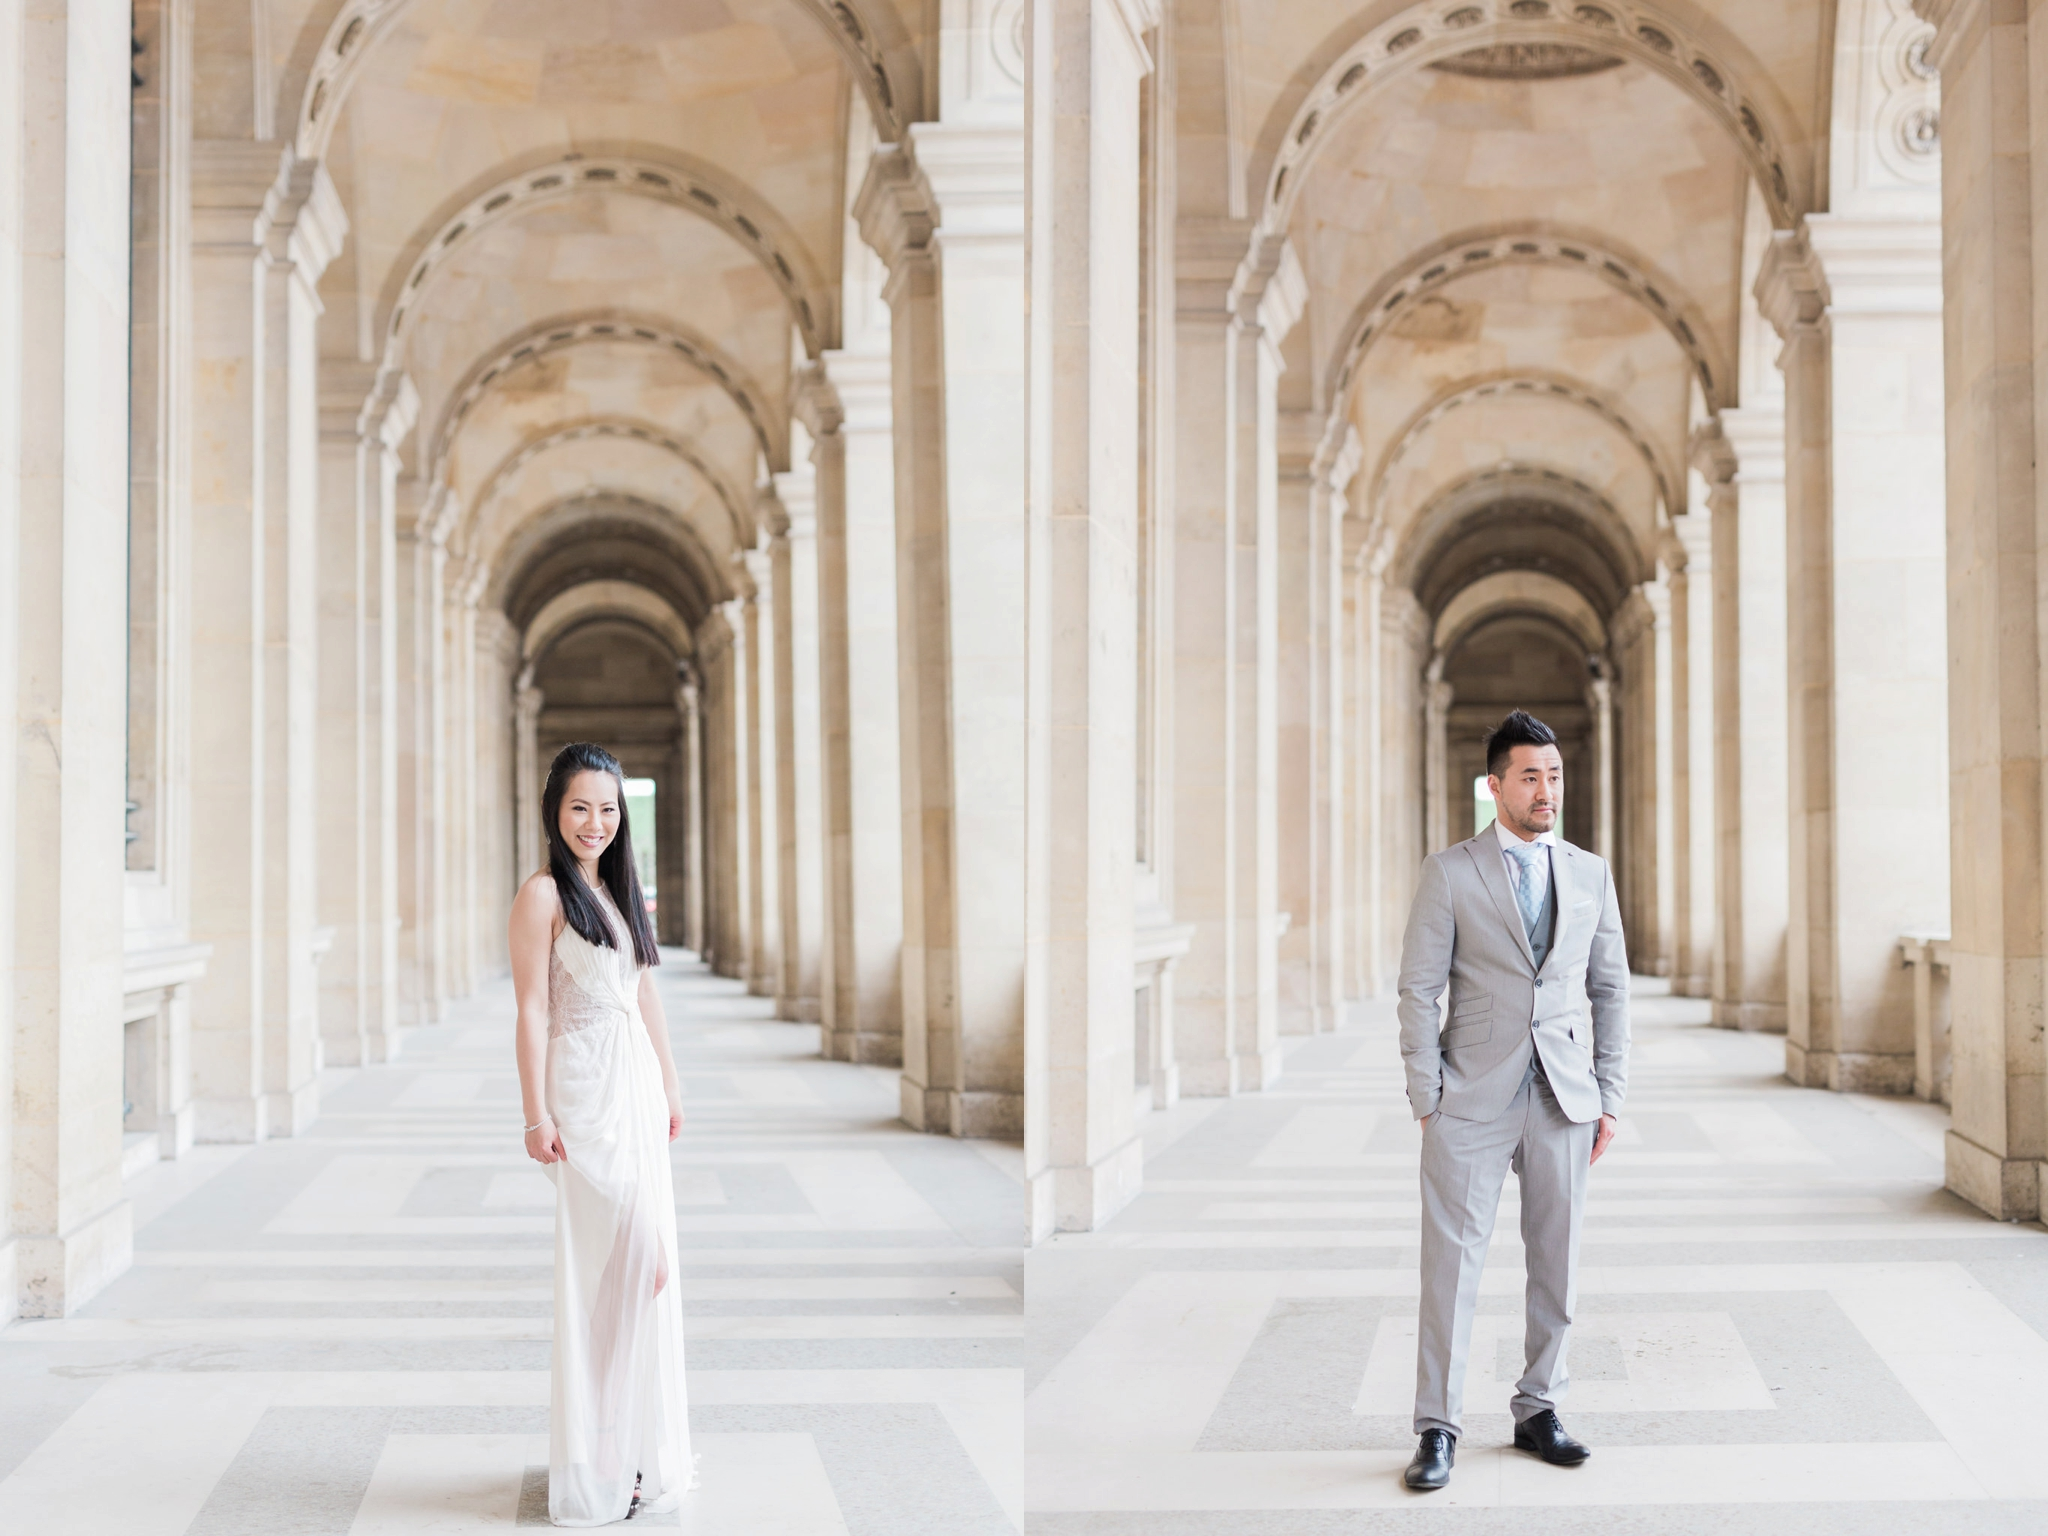 Suzanne_li_photography_paris_engagement_shoot_0006.jpg